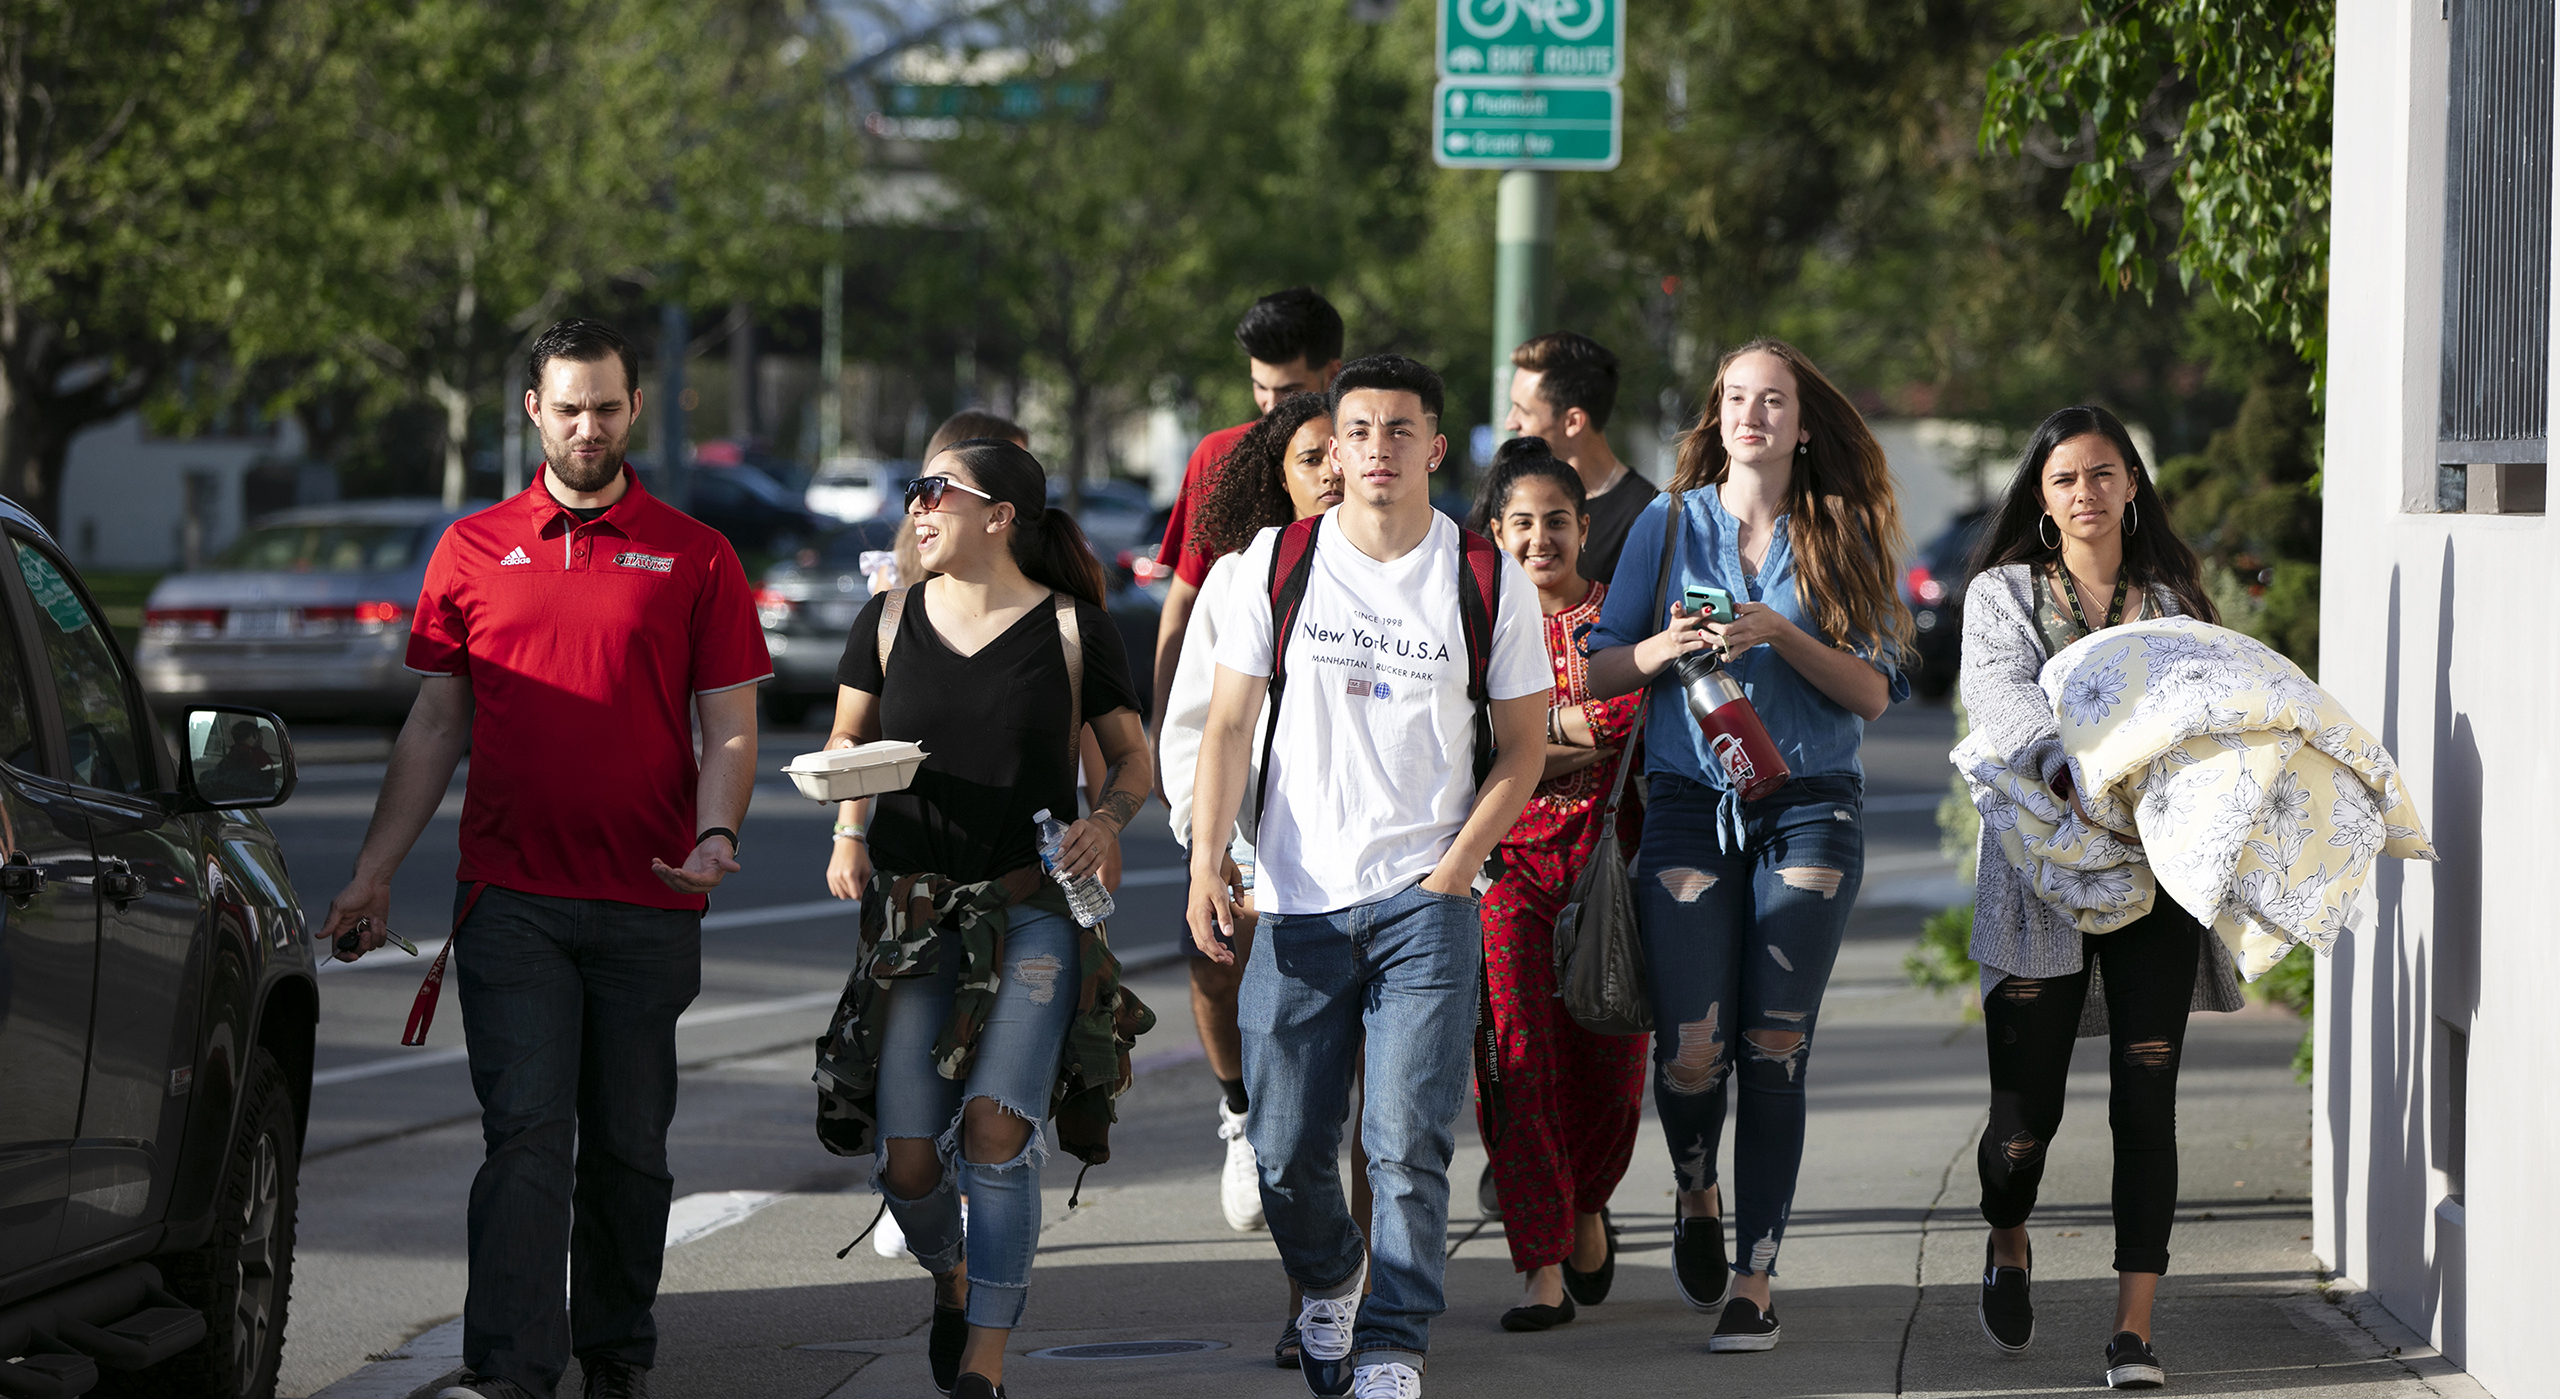 Students in downtown Oakland